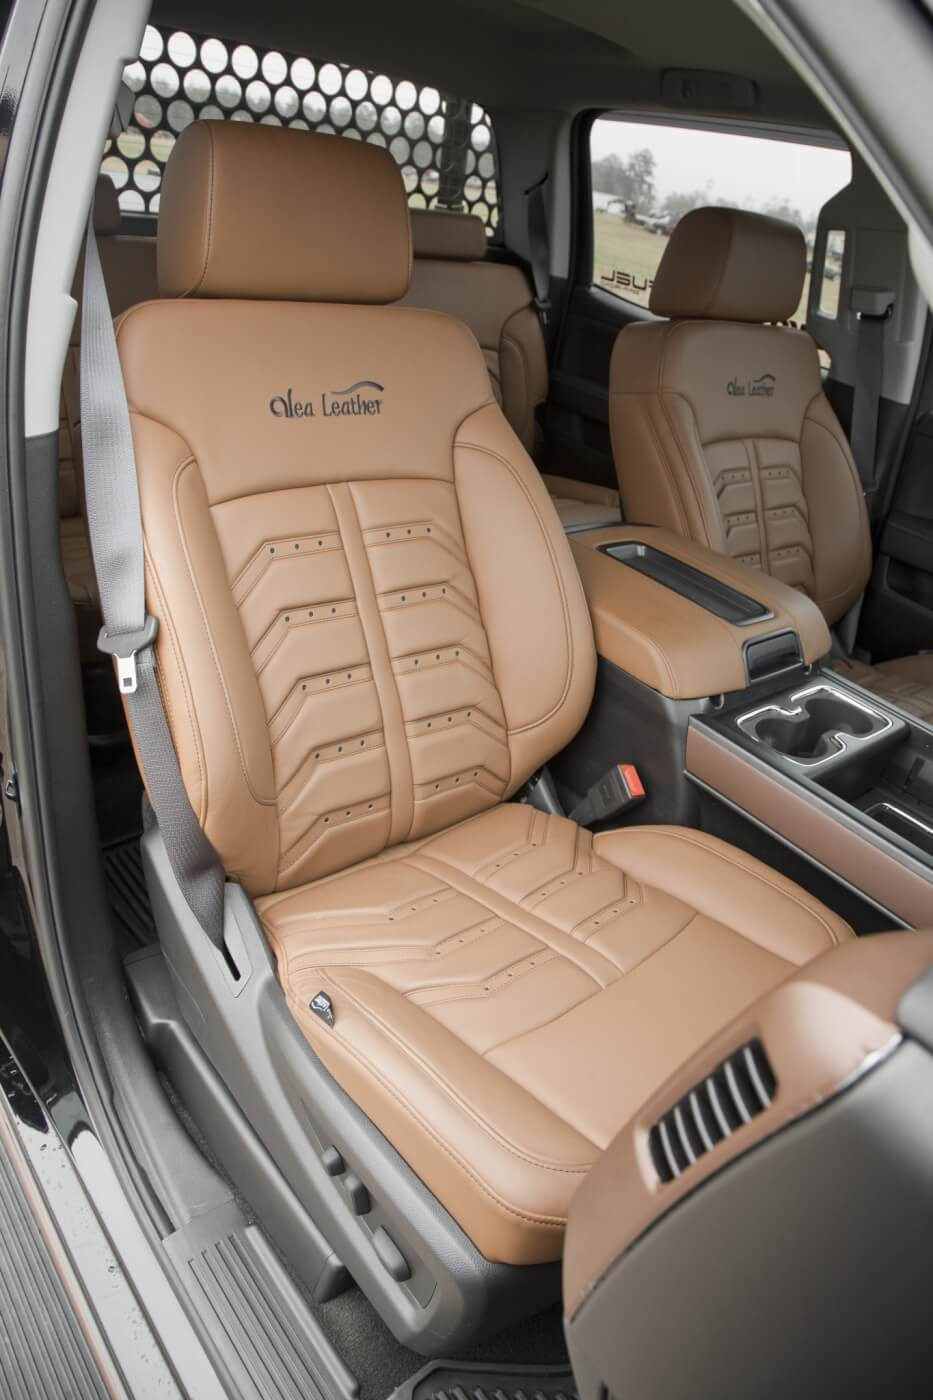 The interior is mostly stock, with the stock seats being recovered with Amaretto-colored Napa grain leather covers from Alea Leather. The sound system was also upgraded with Kicker speakers tied into the factory touchscreen head unit.